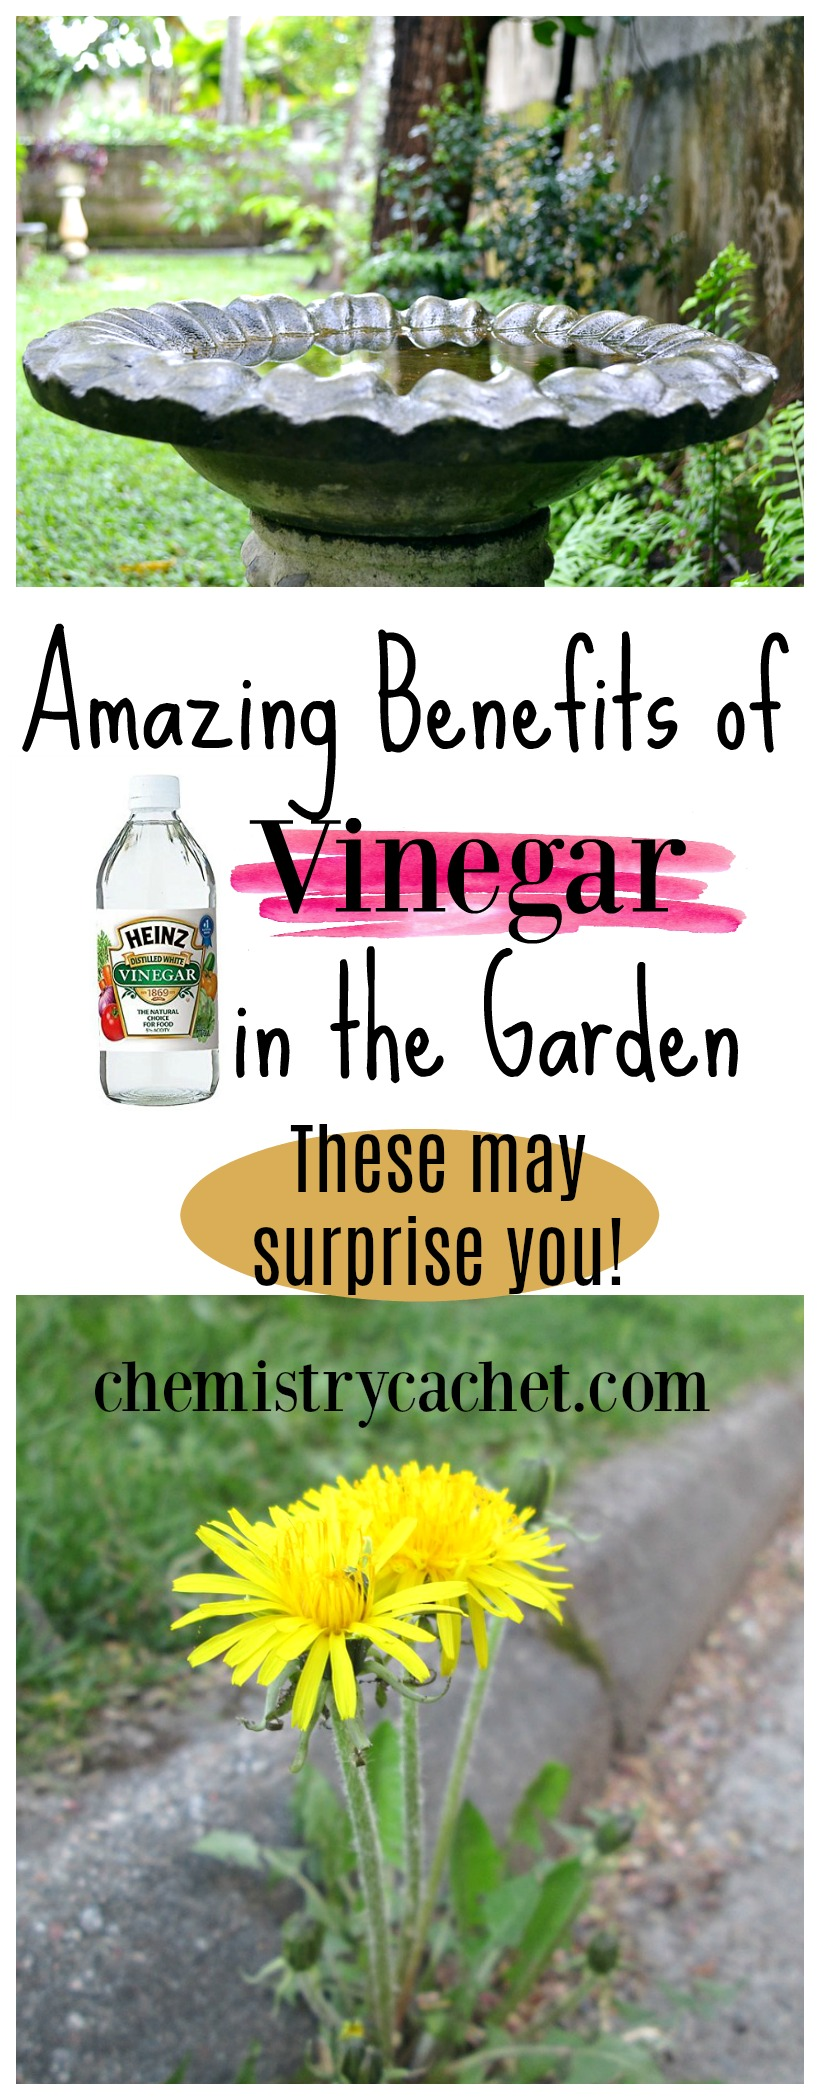 There are so many amazing benefits of vinegar in the garden. These may surprise you! Use vinegar this fall, spring, and summer to keep everything healthy and clean in the garden on chemistrycachet.com